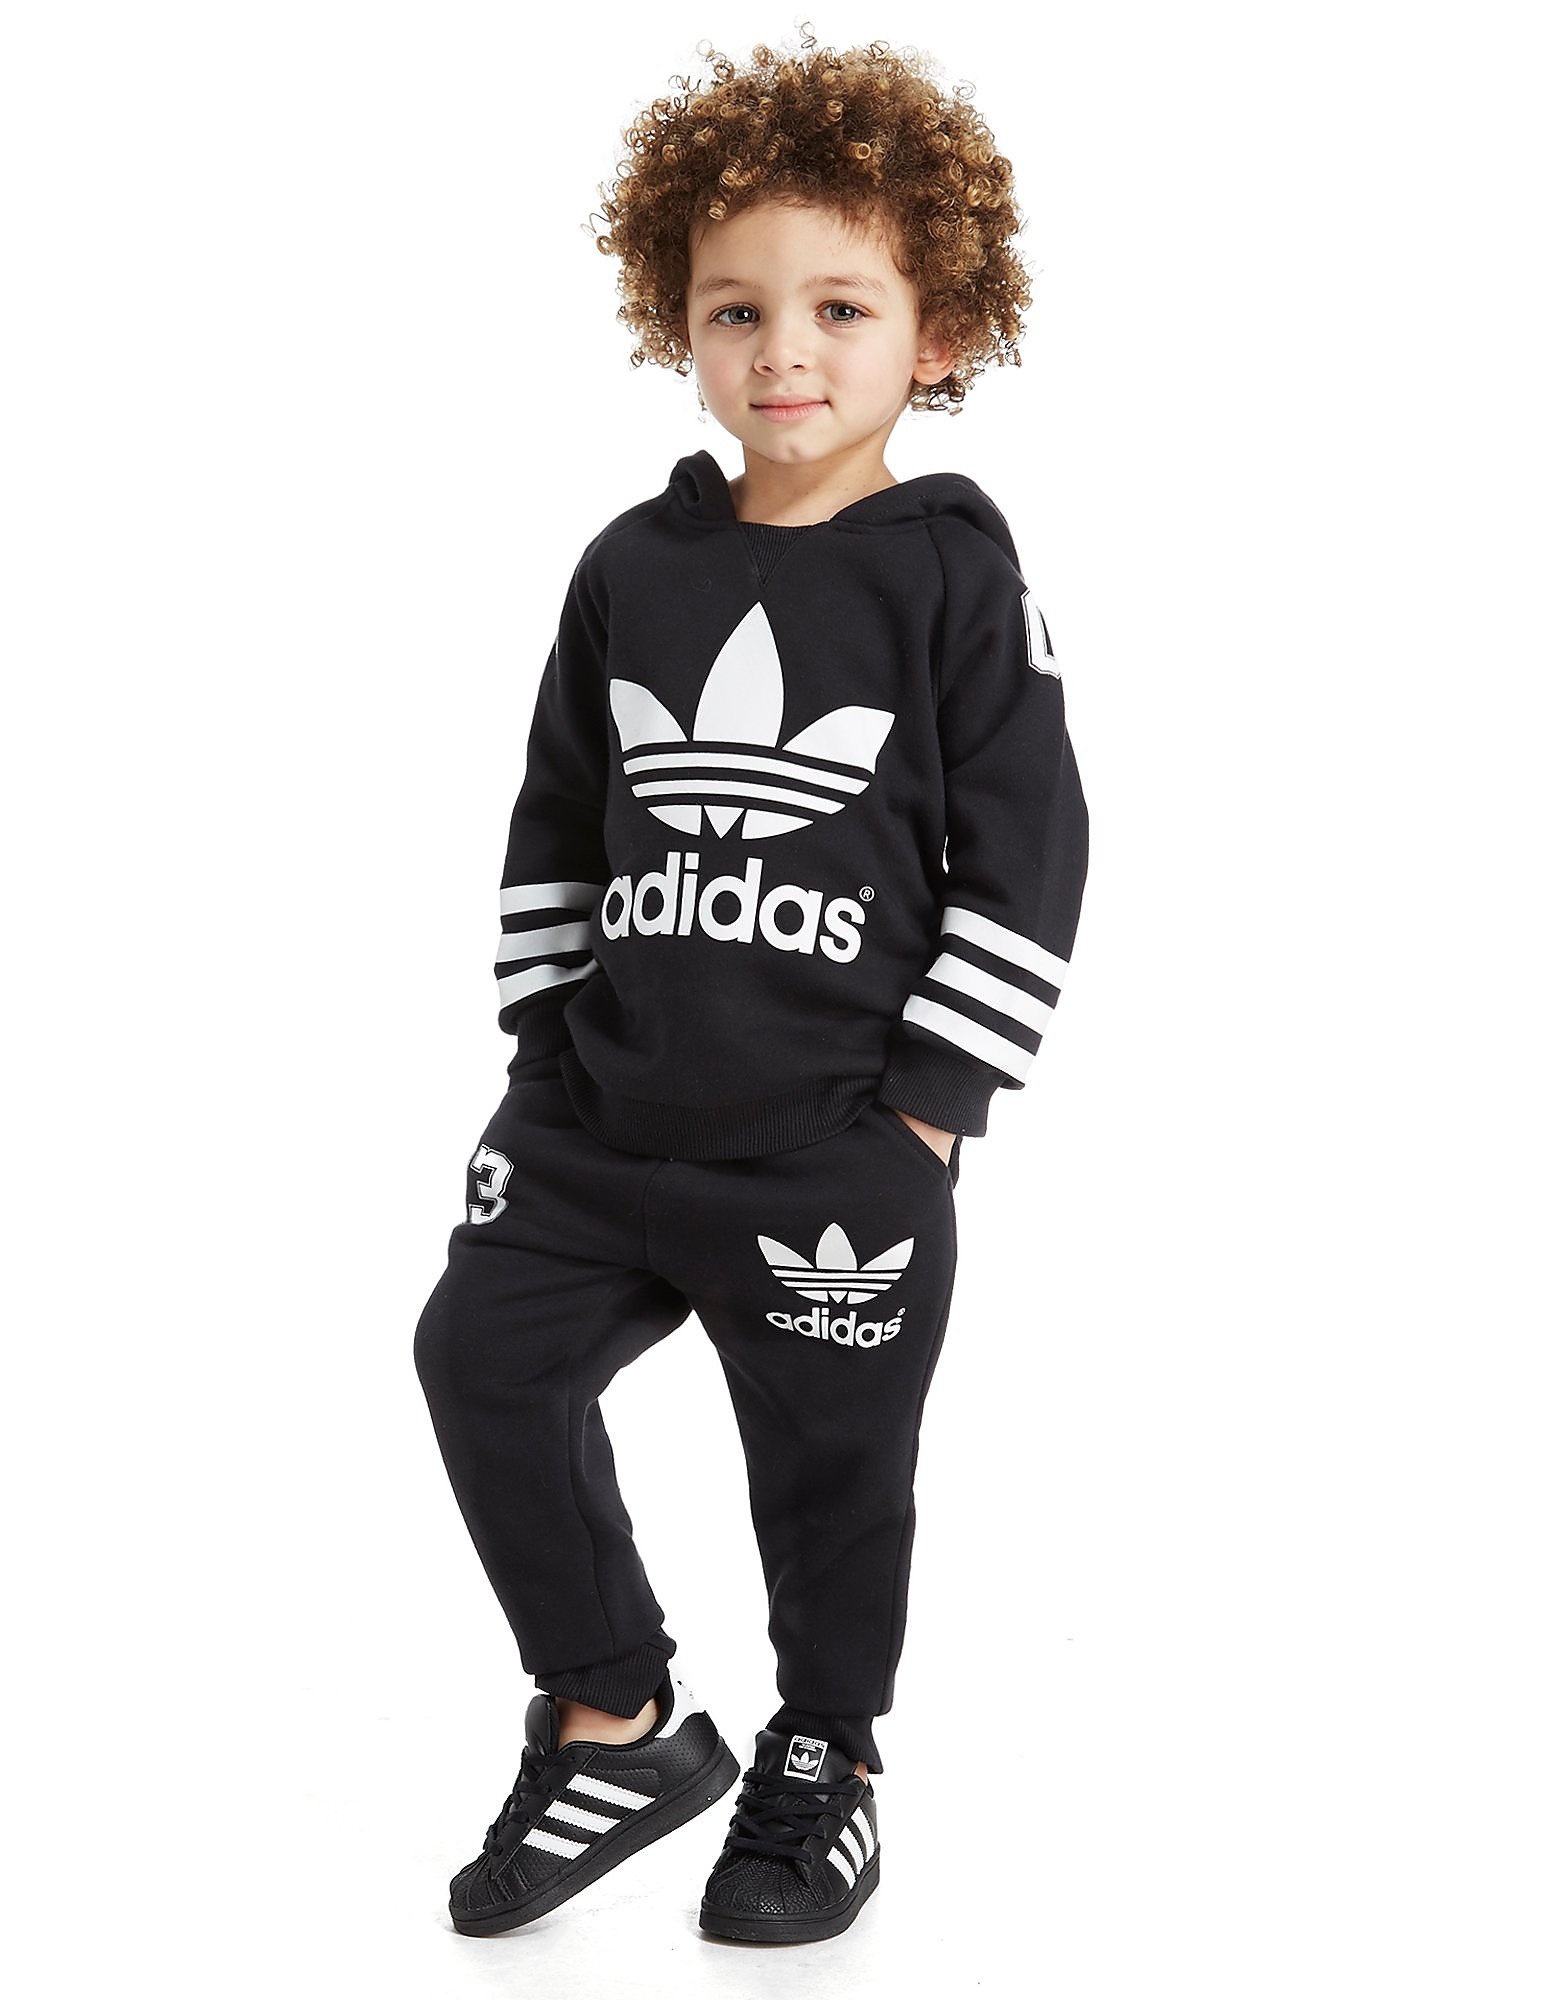 adidas Originals Street Trainingspak Peuter